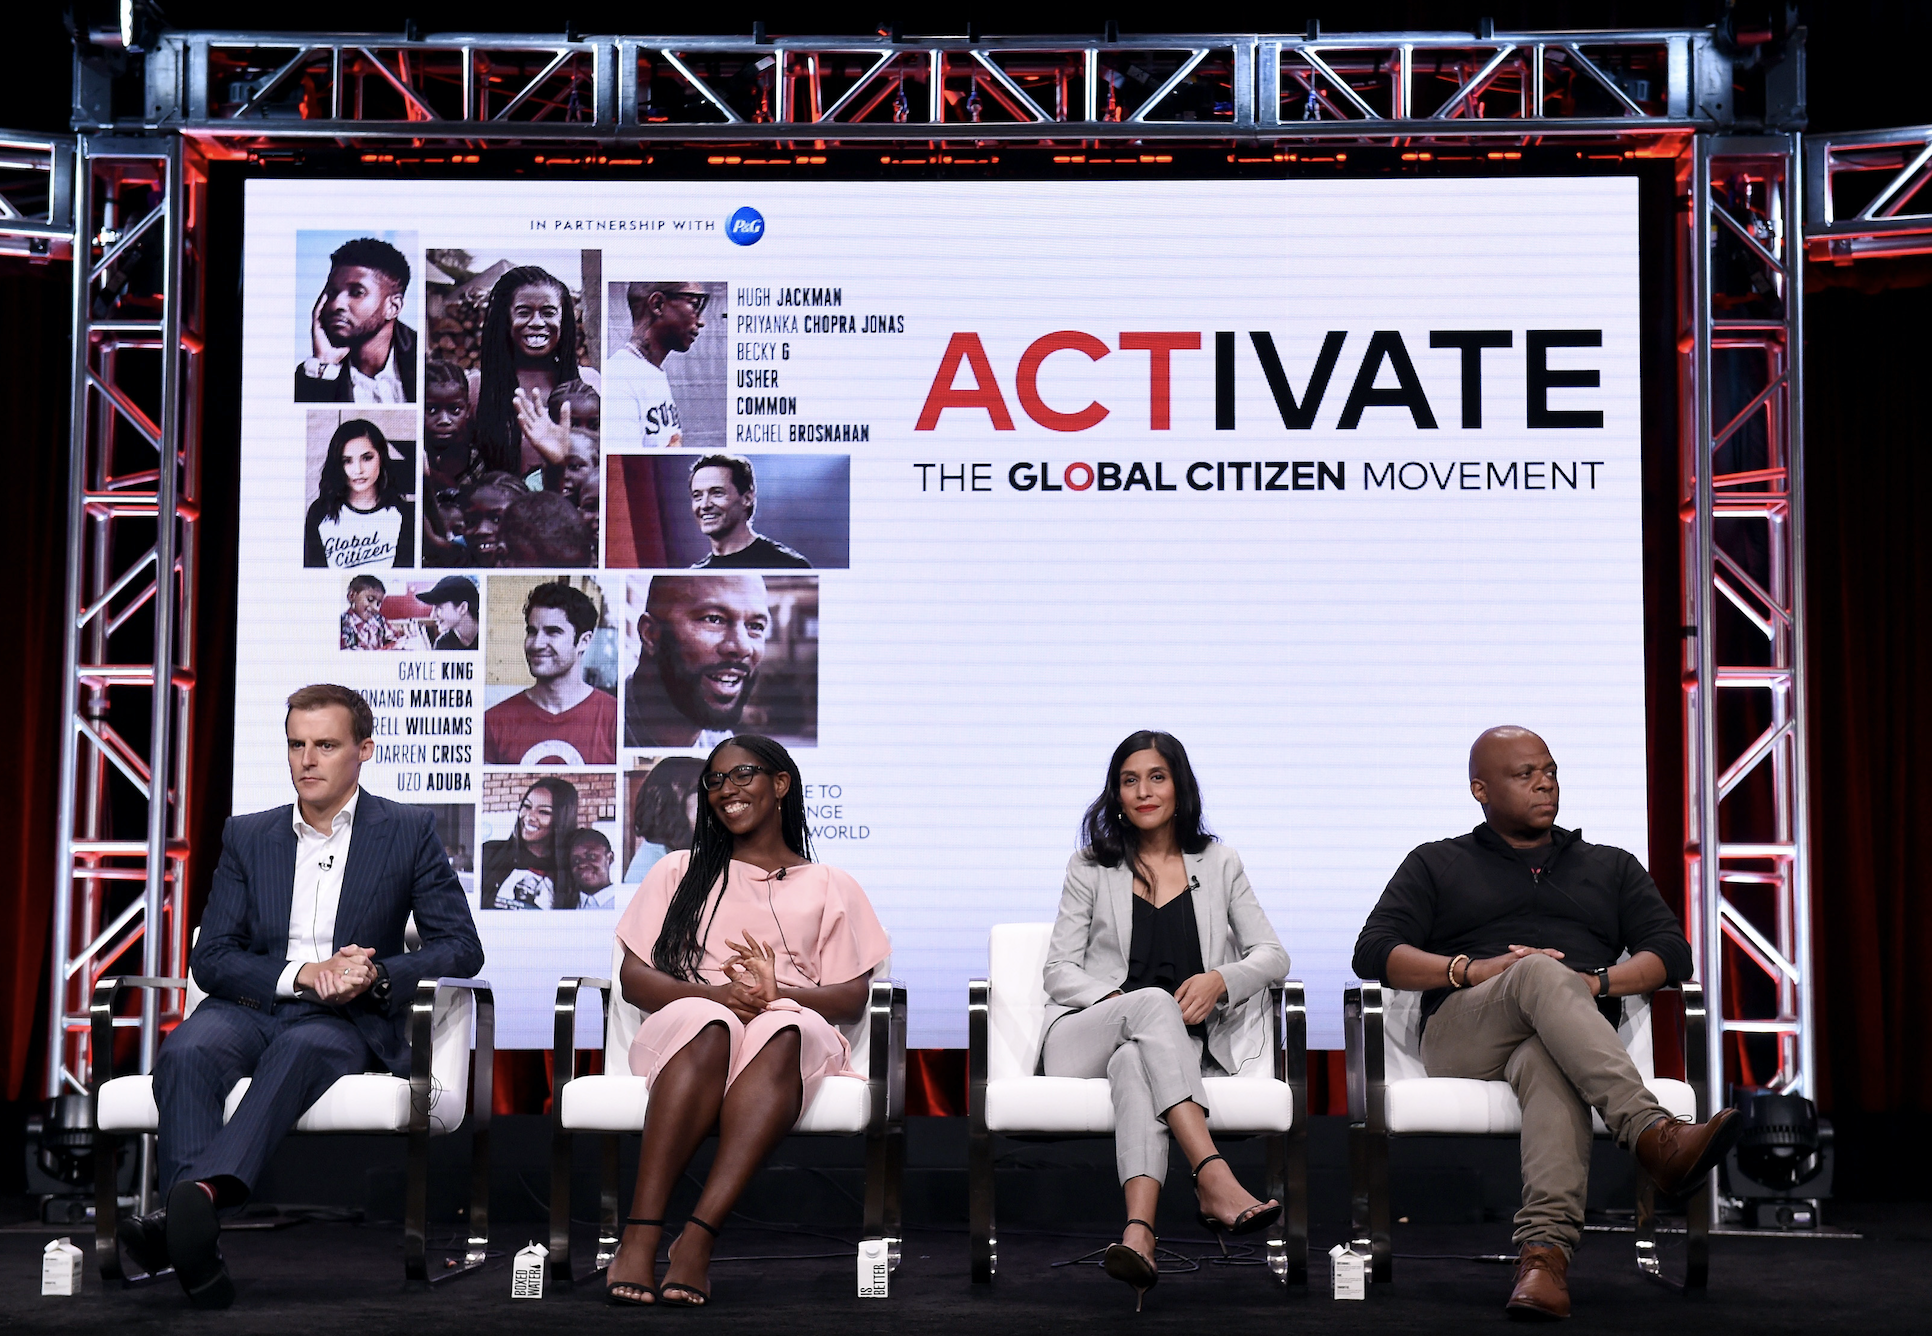 ACTIVATE: THE GLOBAL CITIZEN MOVEMENT